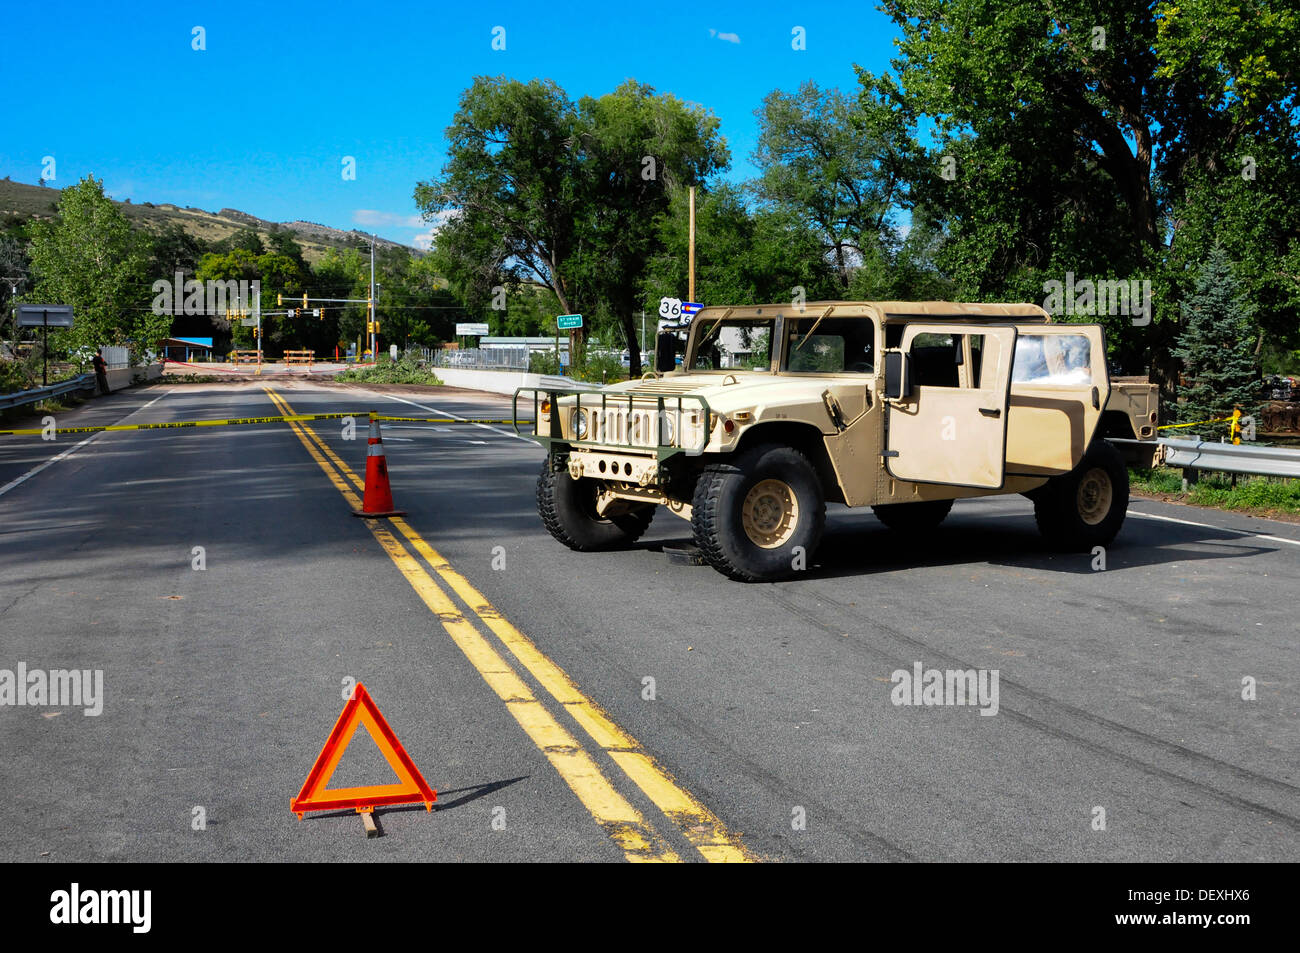 U.S. Soldiers and airmen from the Colorado National Guard set up a checkpoint at the bridge crossing over the St. Vrain River into Lyons, Colo., were flooding destroyed homes and businesses making it an unsafe area to go, Sept. 16, 2013. According to the - Stock Image